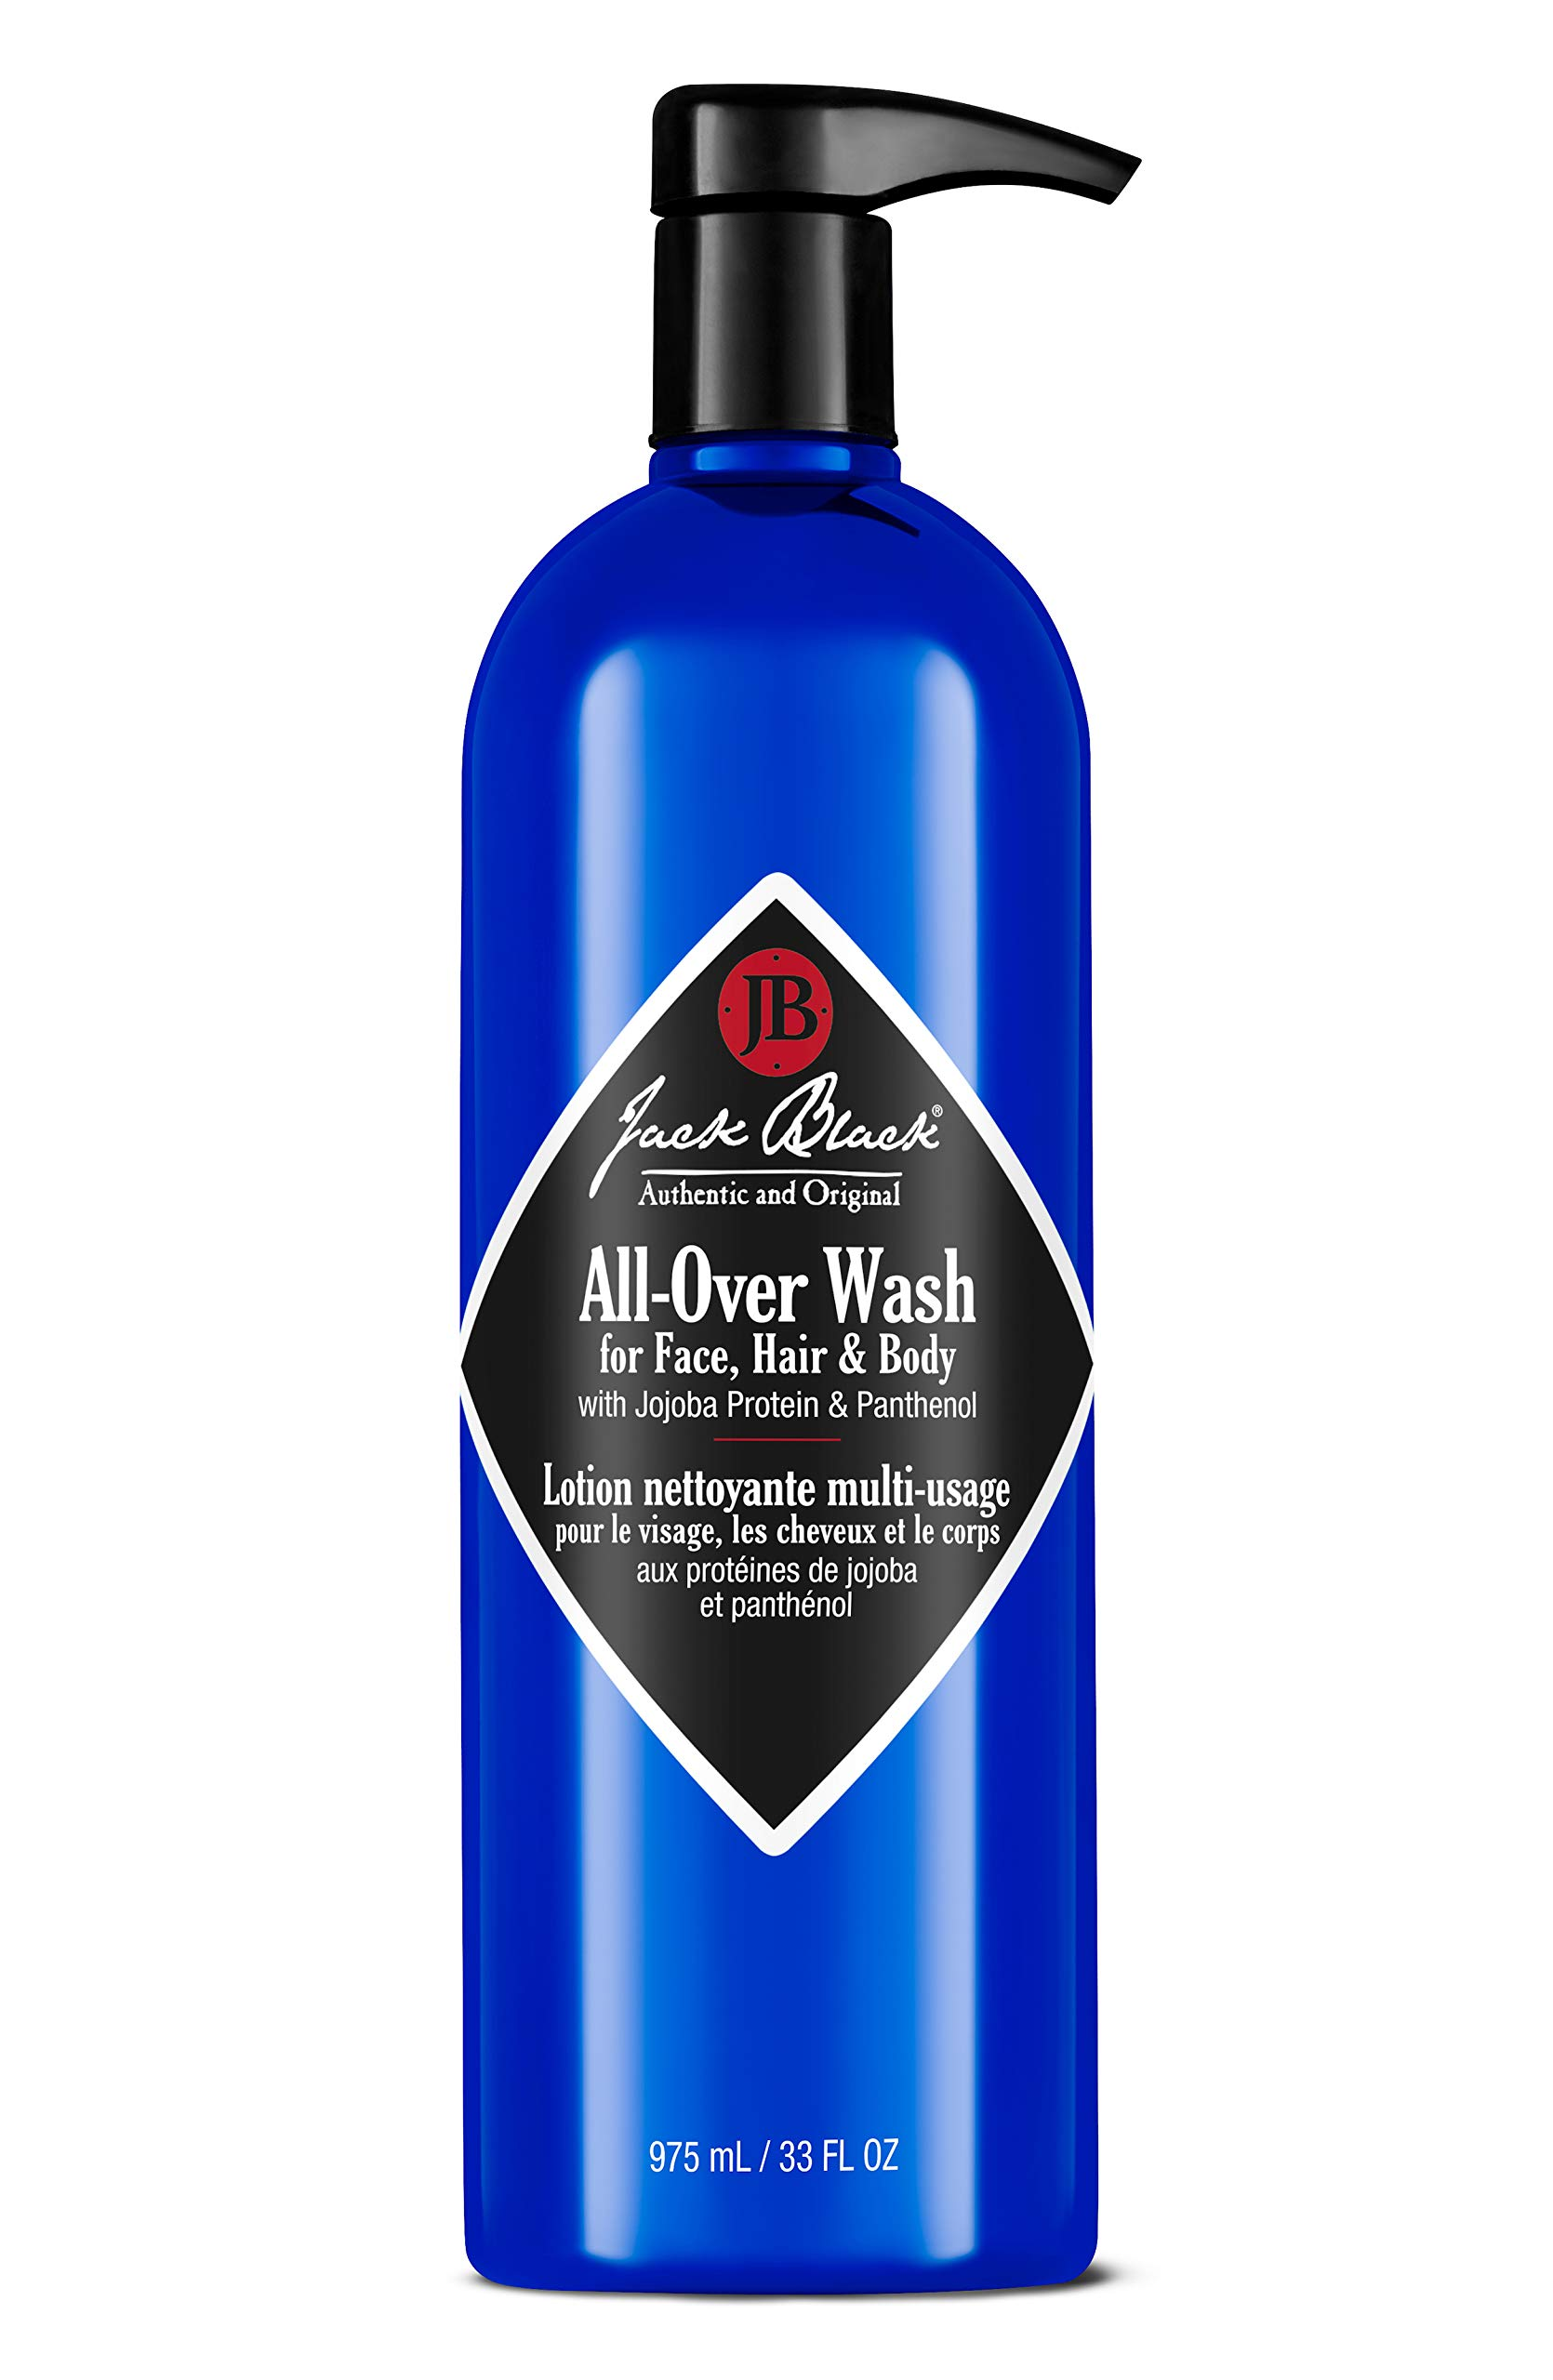 Jack Black All-Over Wash For Face, Hair & Body, 33 fl. oz. by Jack Black (Image #1)